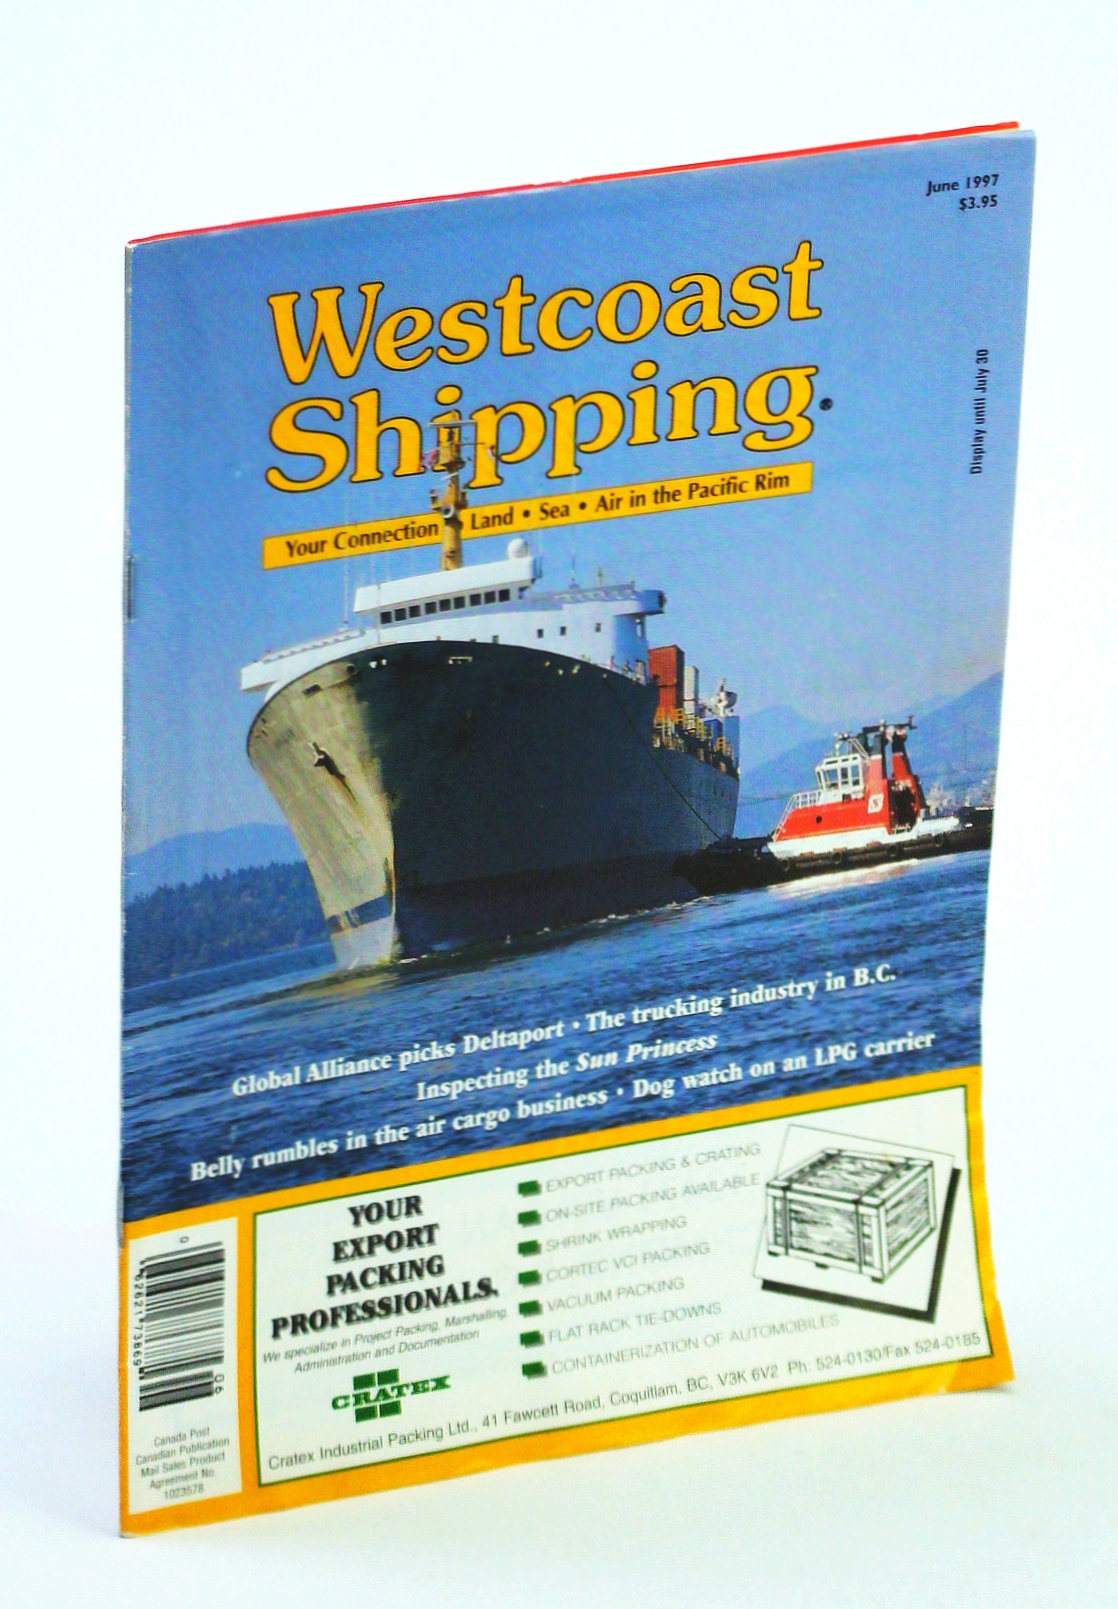 Image for Westcoast Shipping [Magazine] - Your Connection to Land, Sea, Air in the Pacific Rim, June 1997